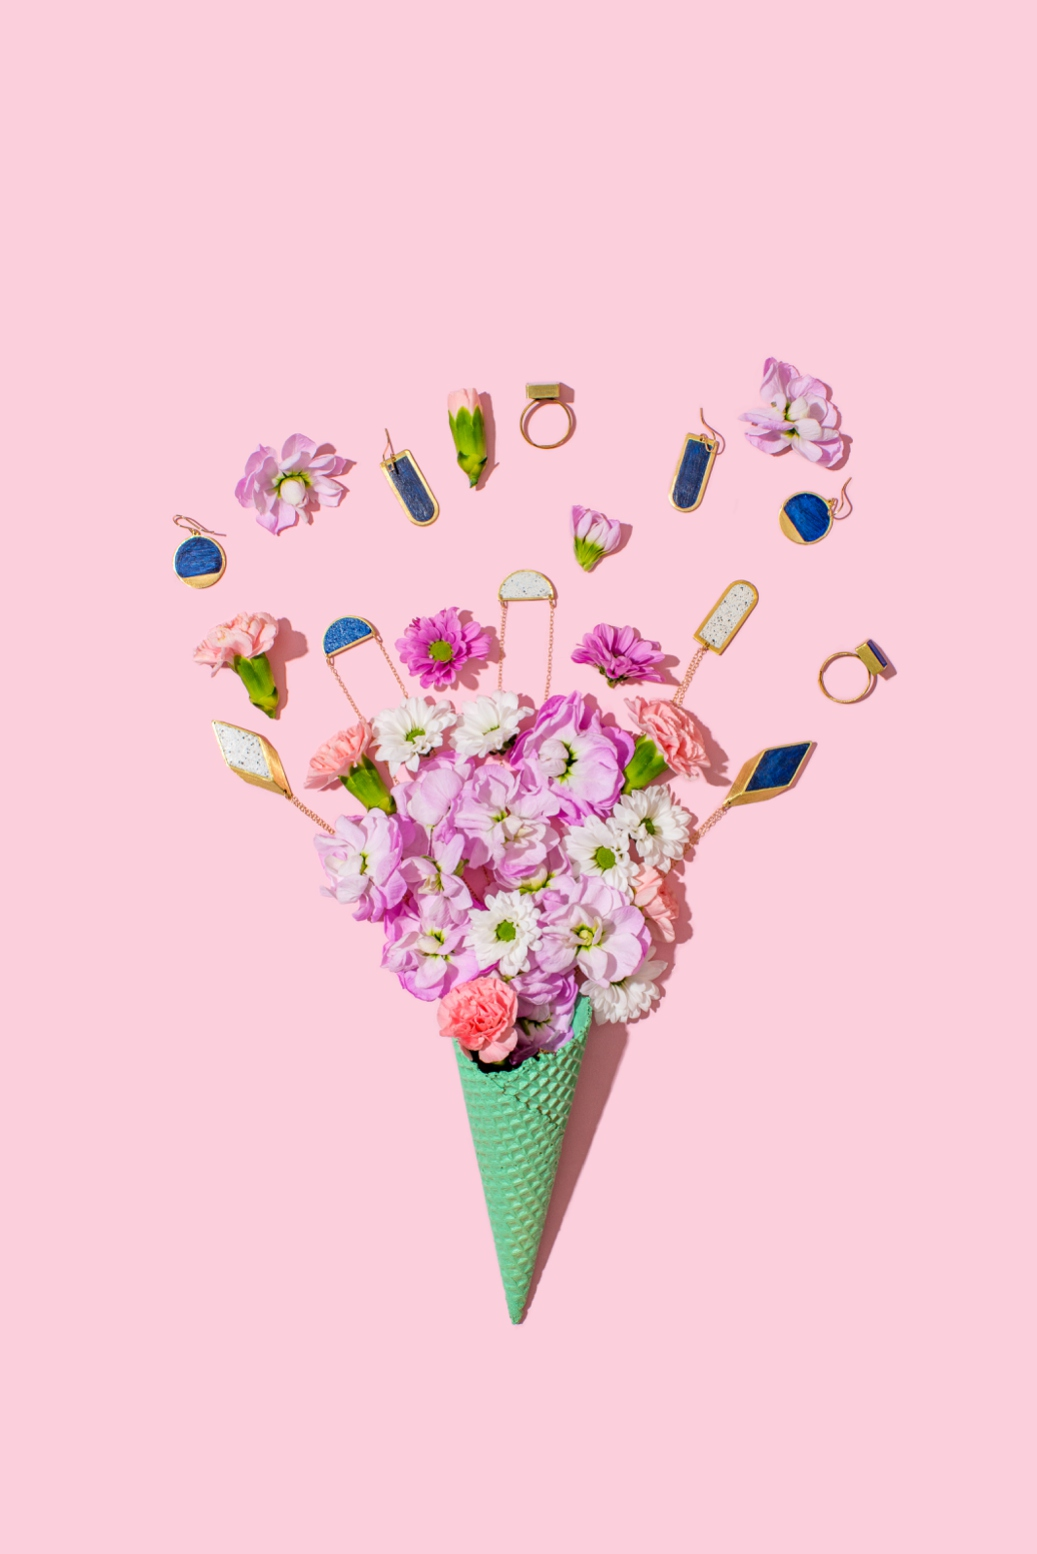 Colourful content creation for Fawn & Rose. Product photography & styling by Marianne Taylor._0002.jpg